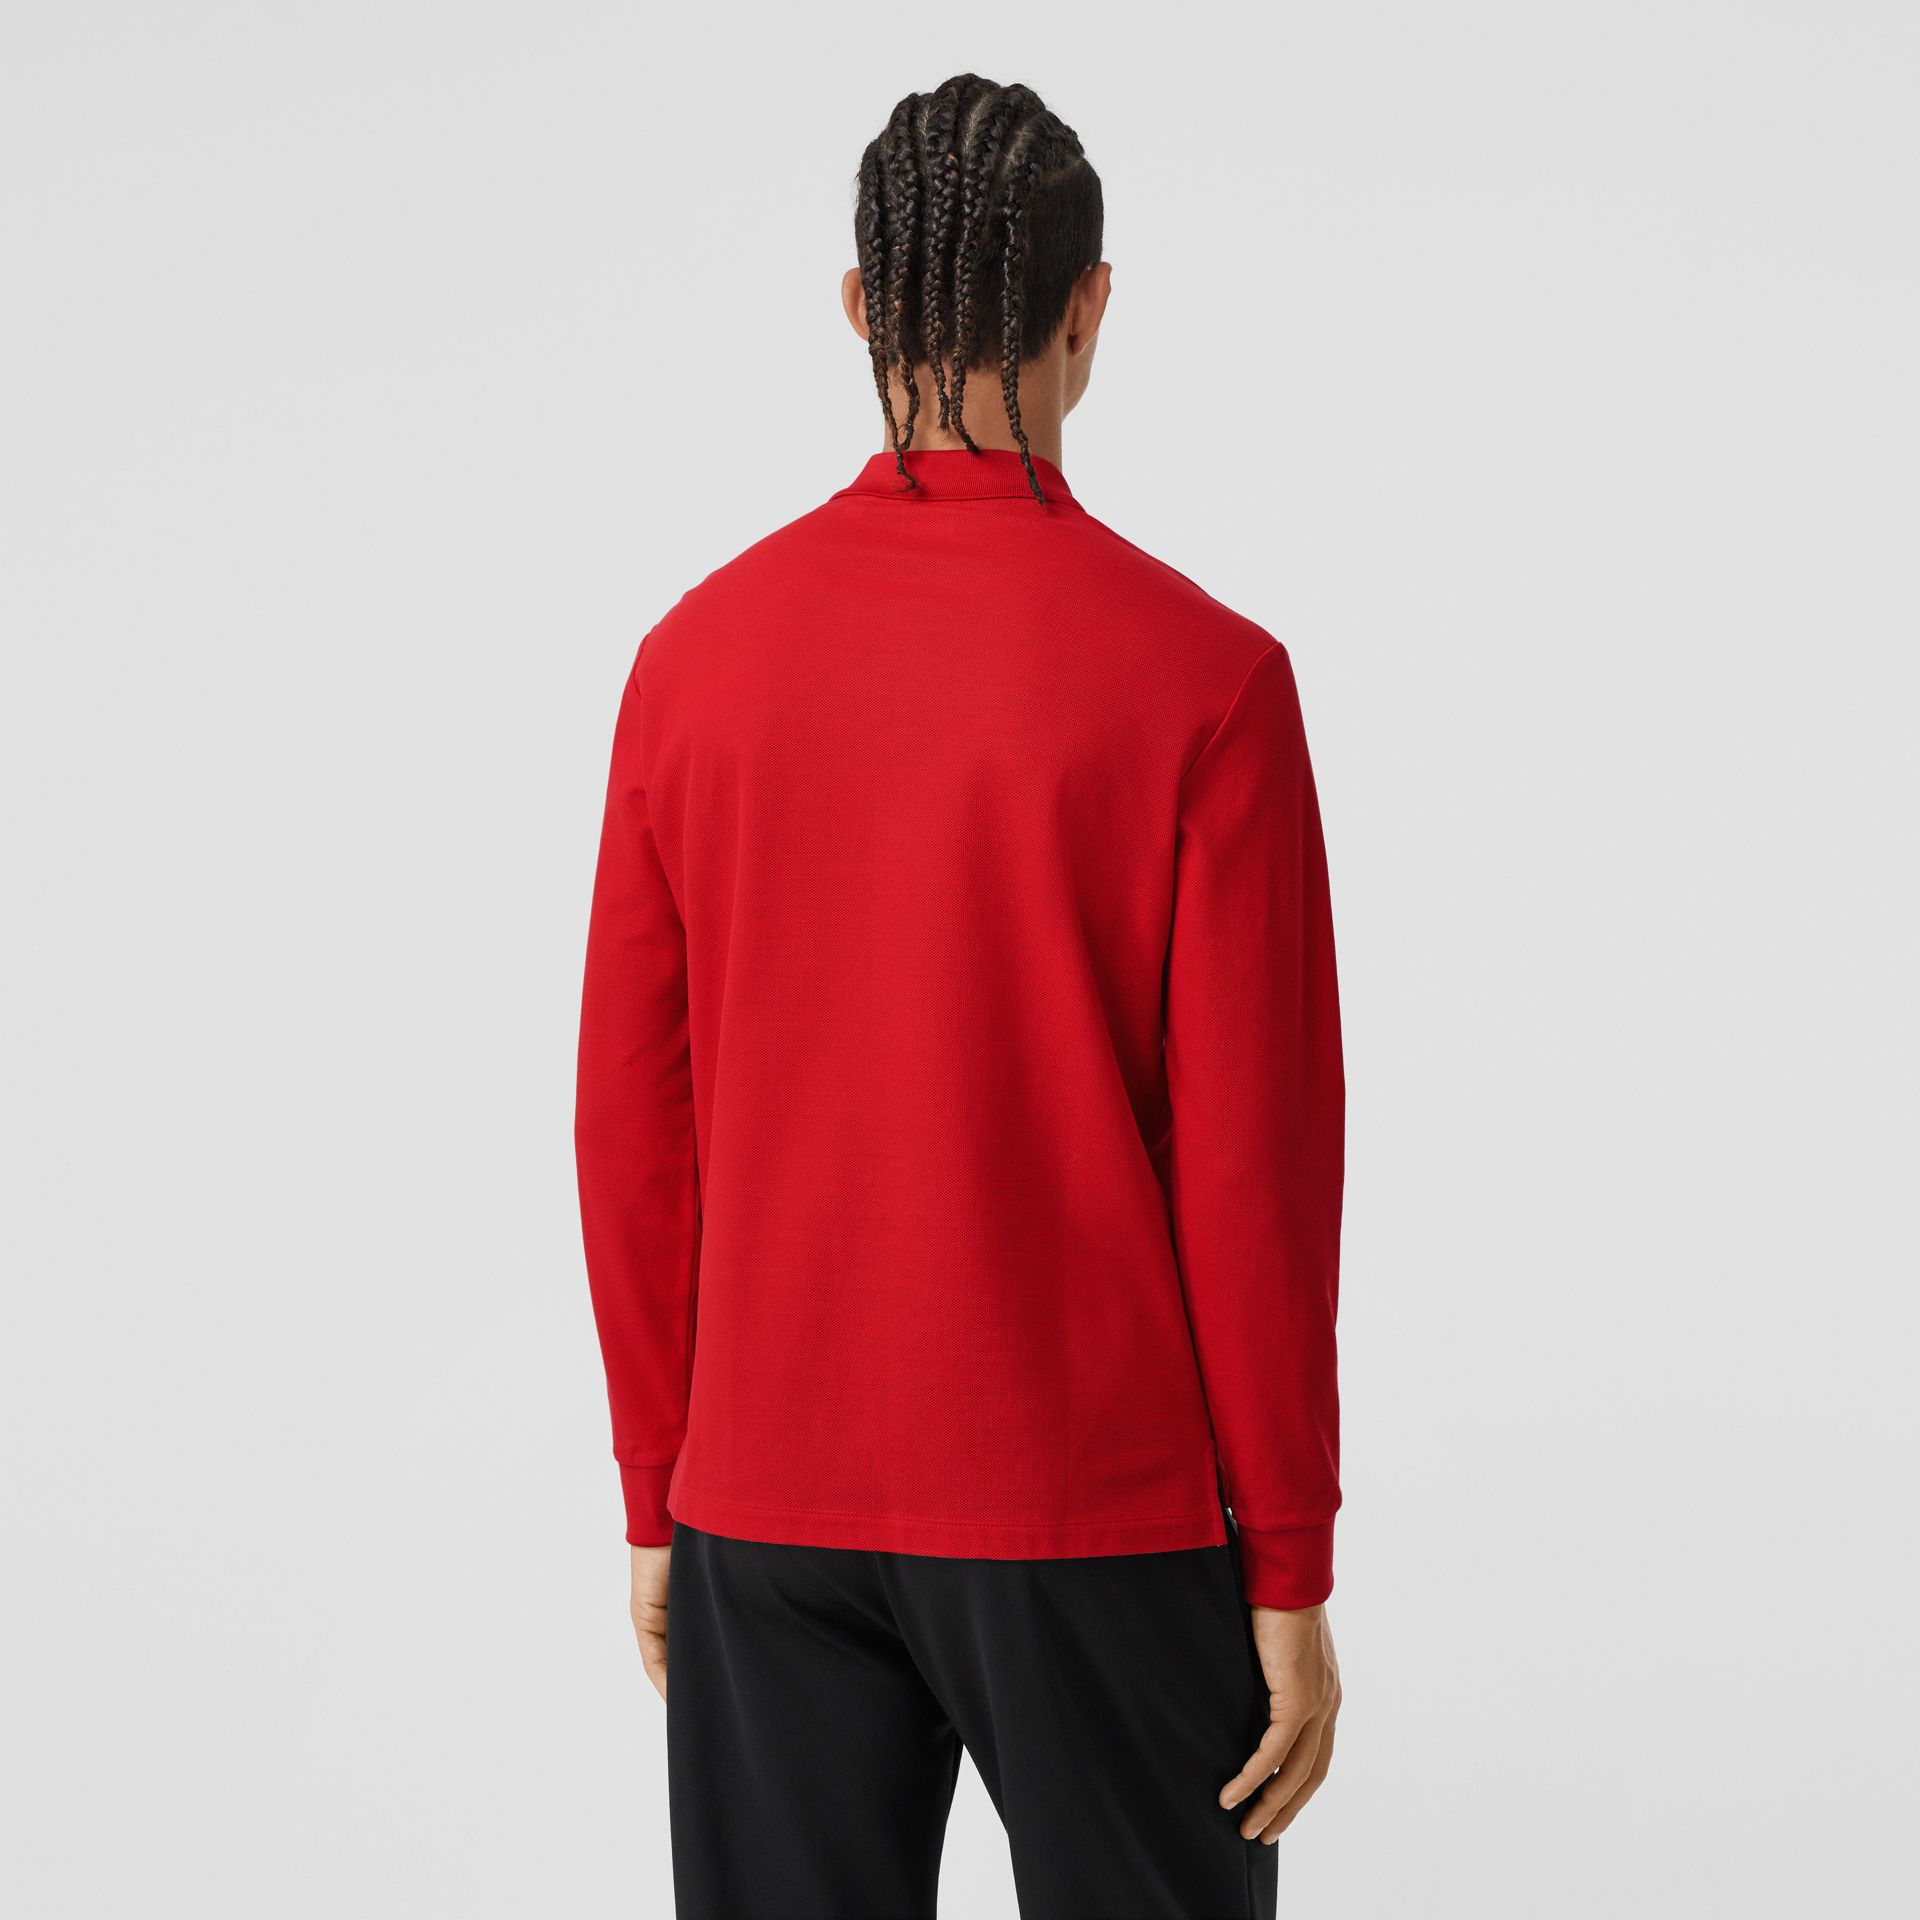 Long-sleeve Monogram Motif Cotton Piqué Polo Shirt in Bright Red - Men | Burberry - gallery image 2